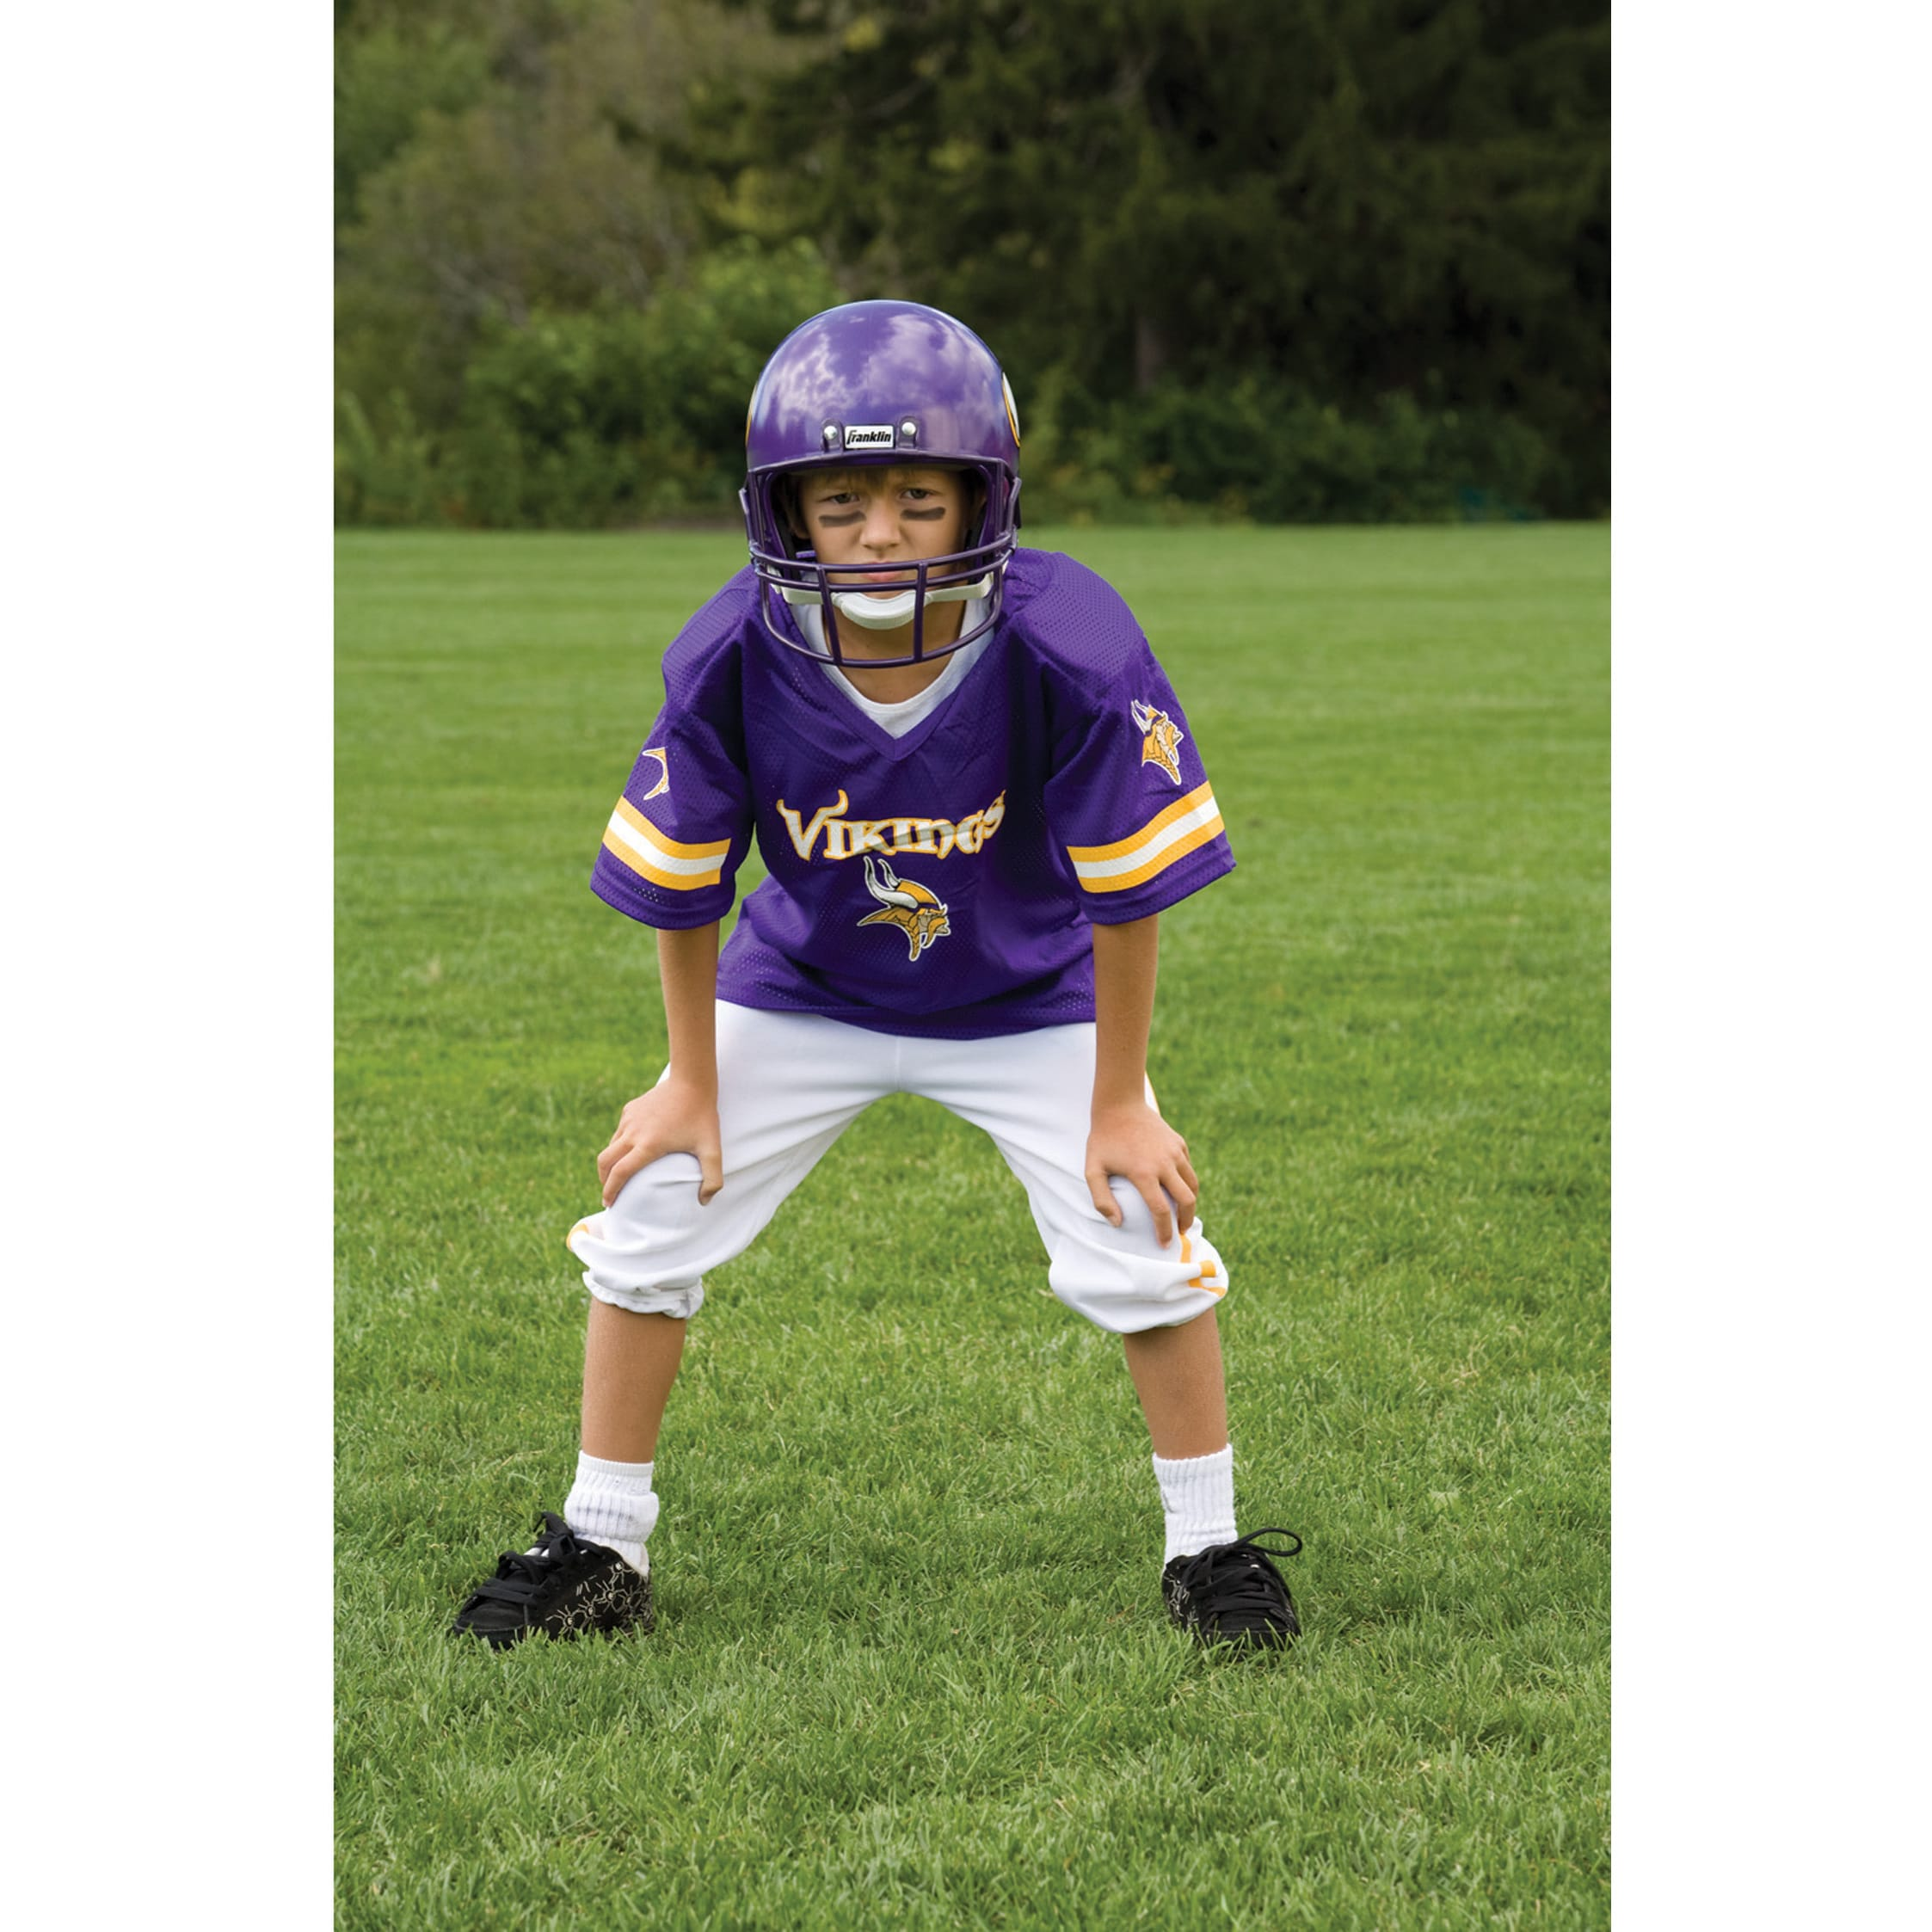 e9099eefd Shop Franklin Sports NFL Minnesota Vikings Youth Uniform Set - Free  Shipping Today - Overstock - 6192094